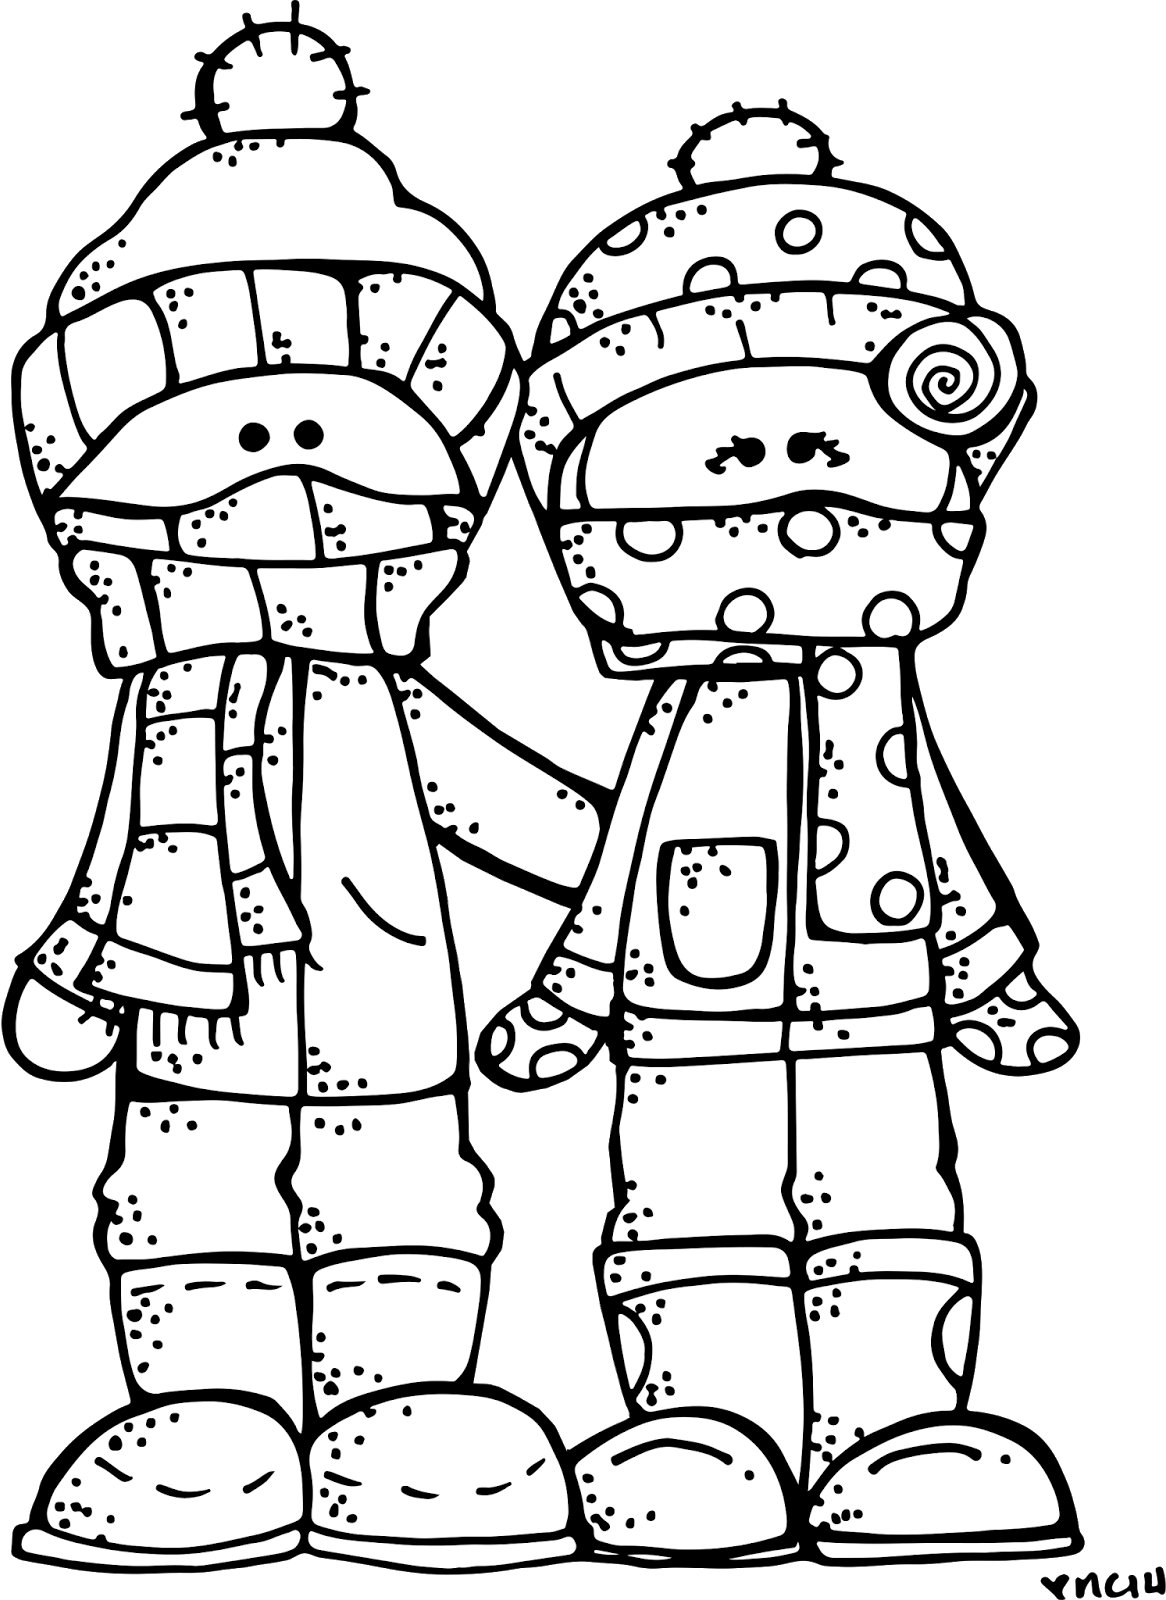 Melonheadz lds illustrating winter. Mittens clipart cold weather clothes